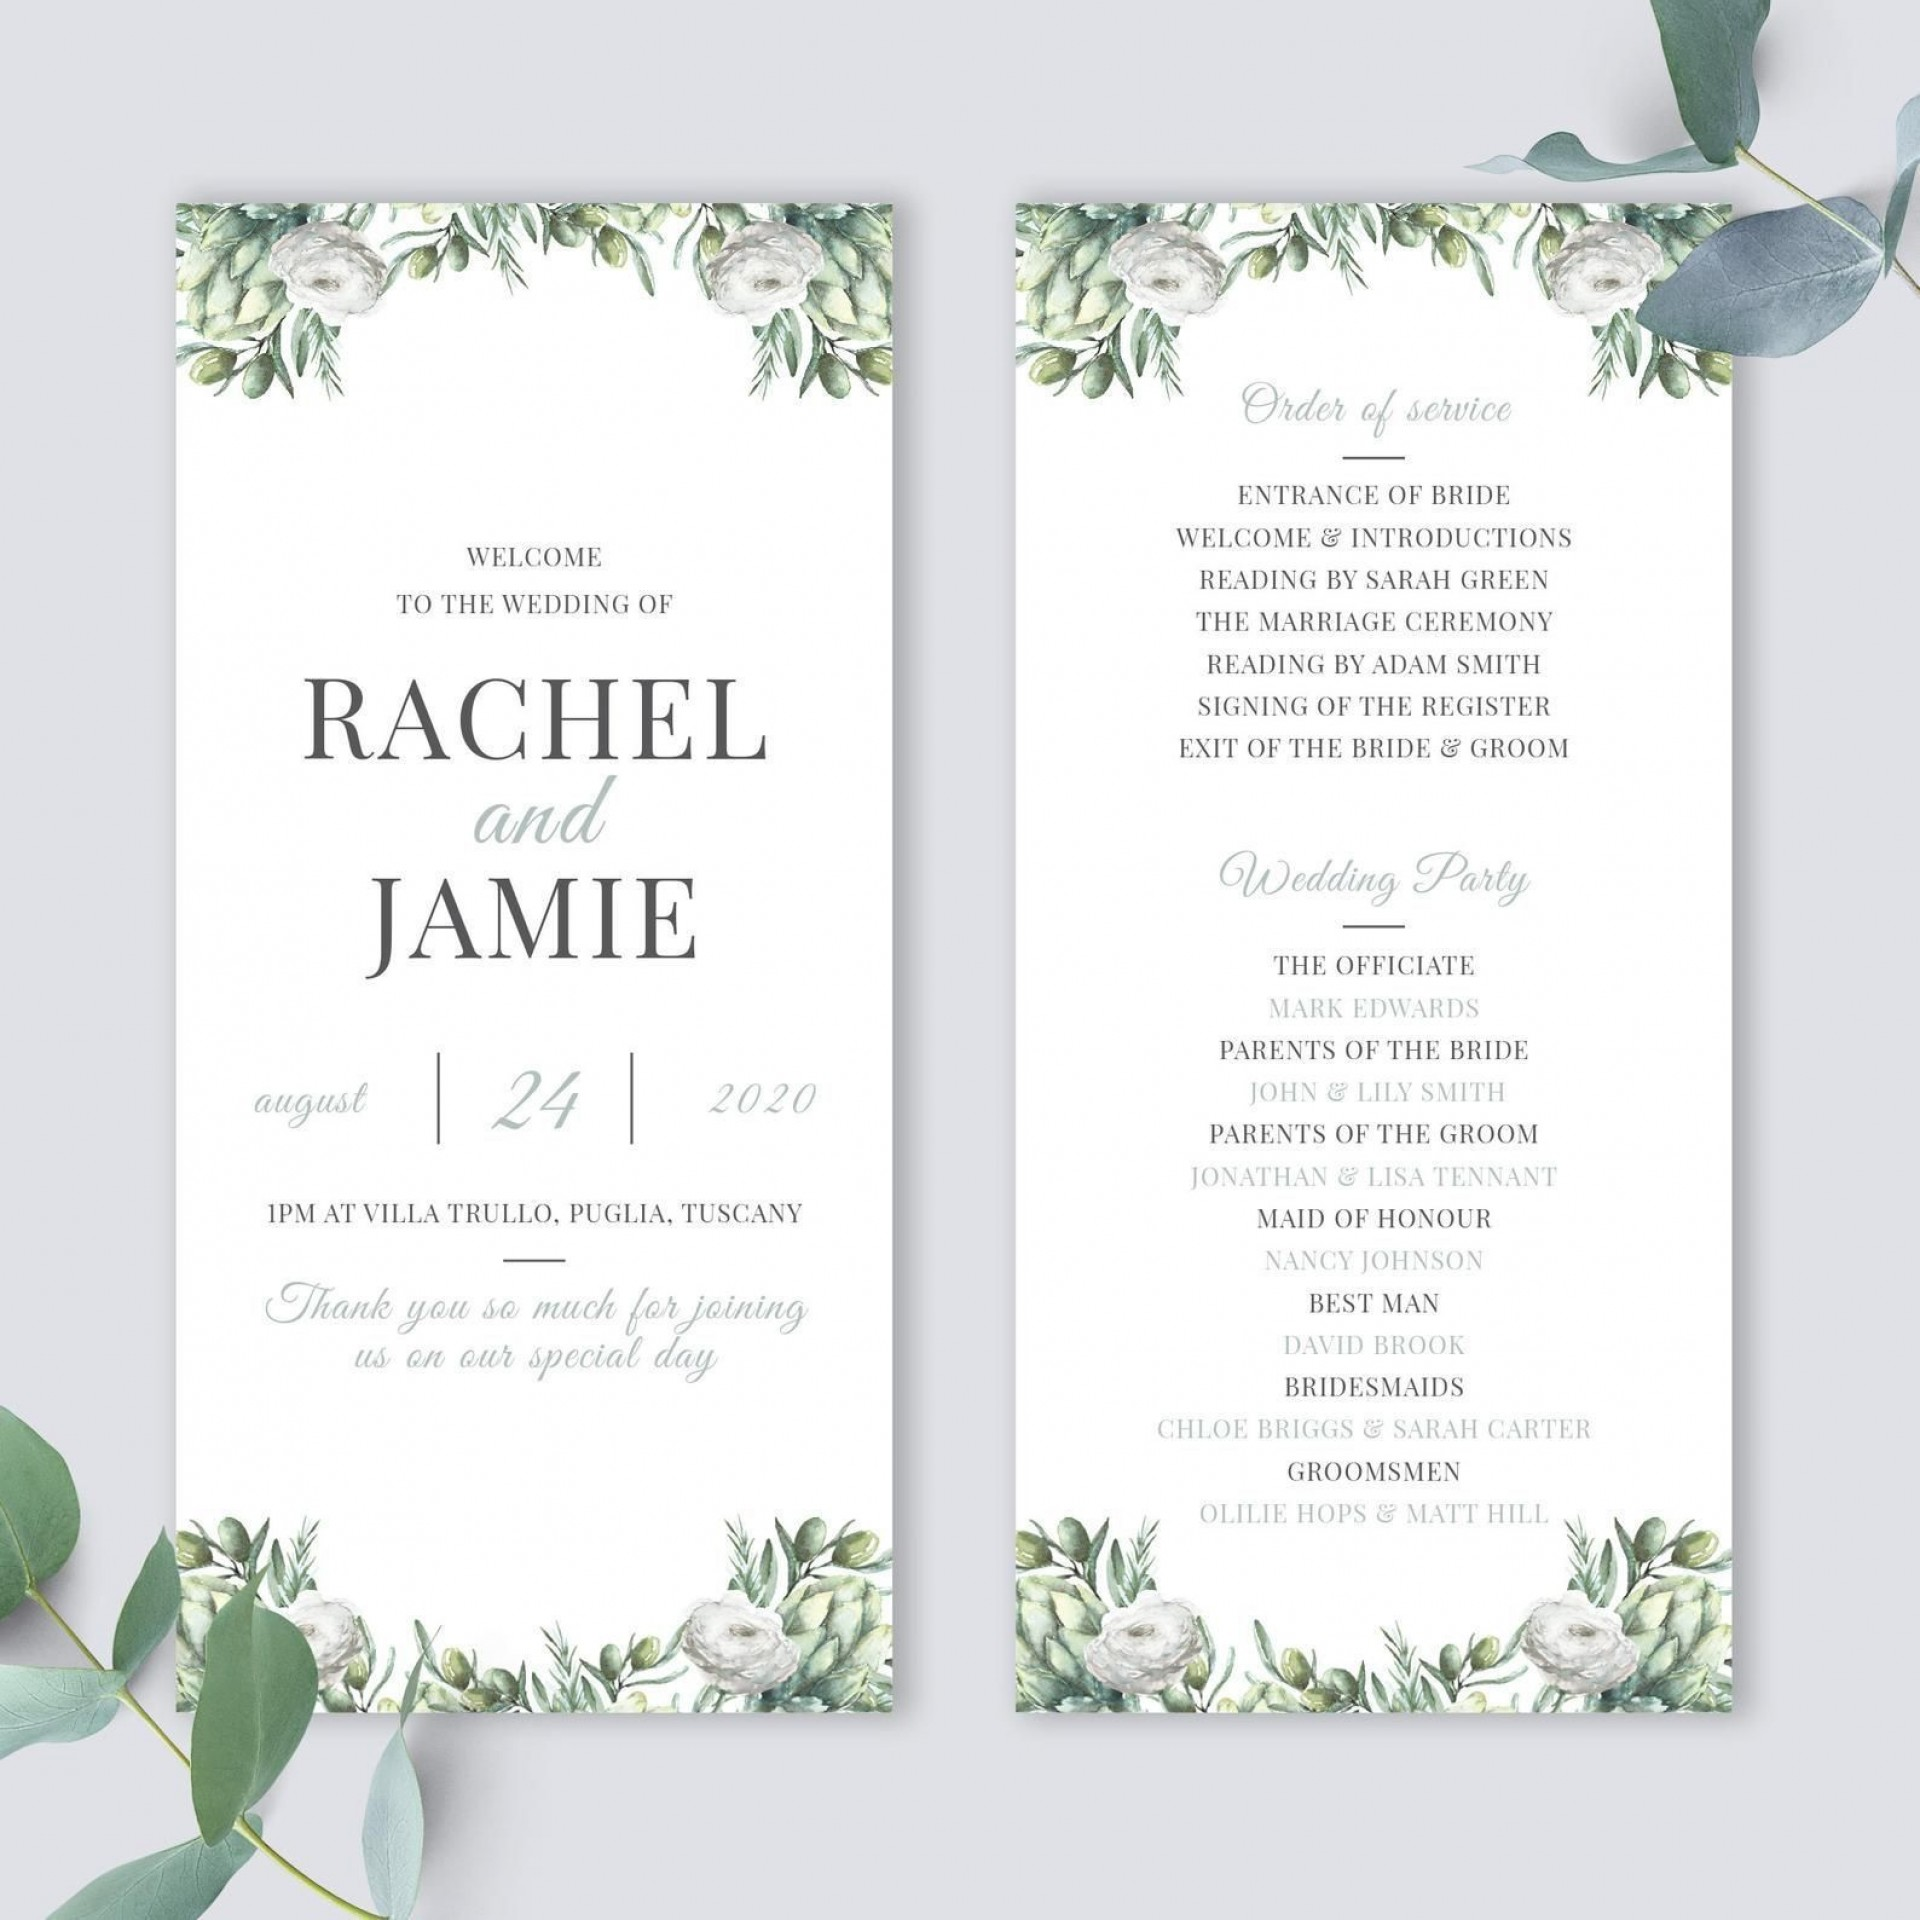 010 Awful Wedding Order Of Service Template Free Picture  Front Cover Download Church1920